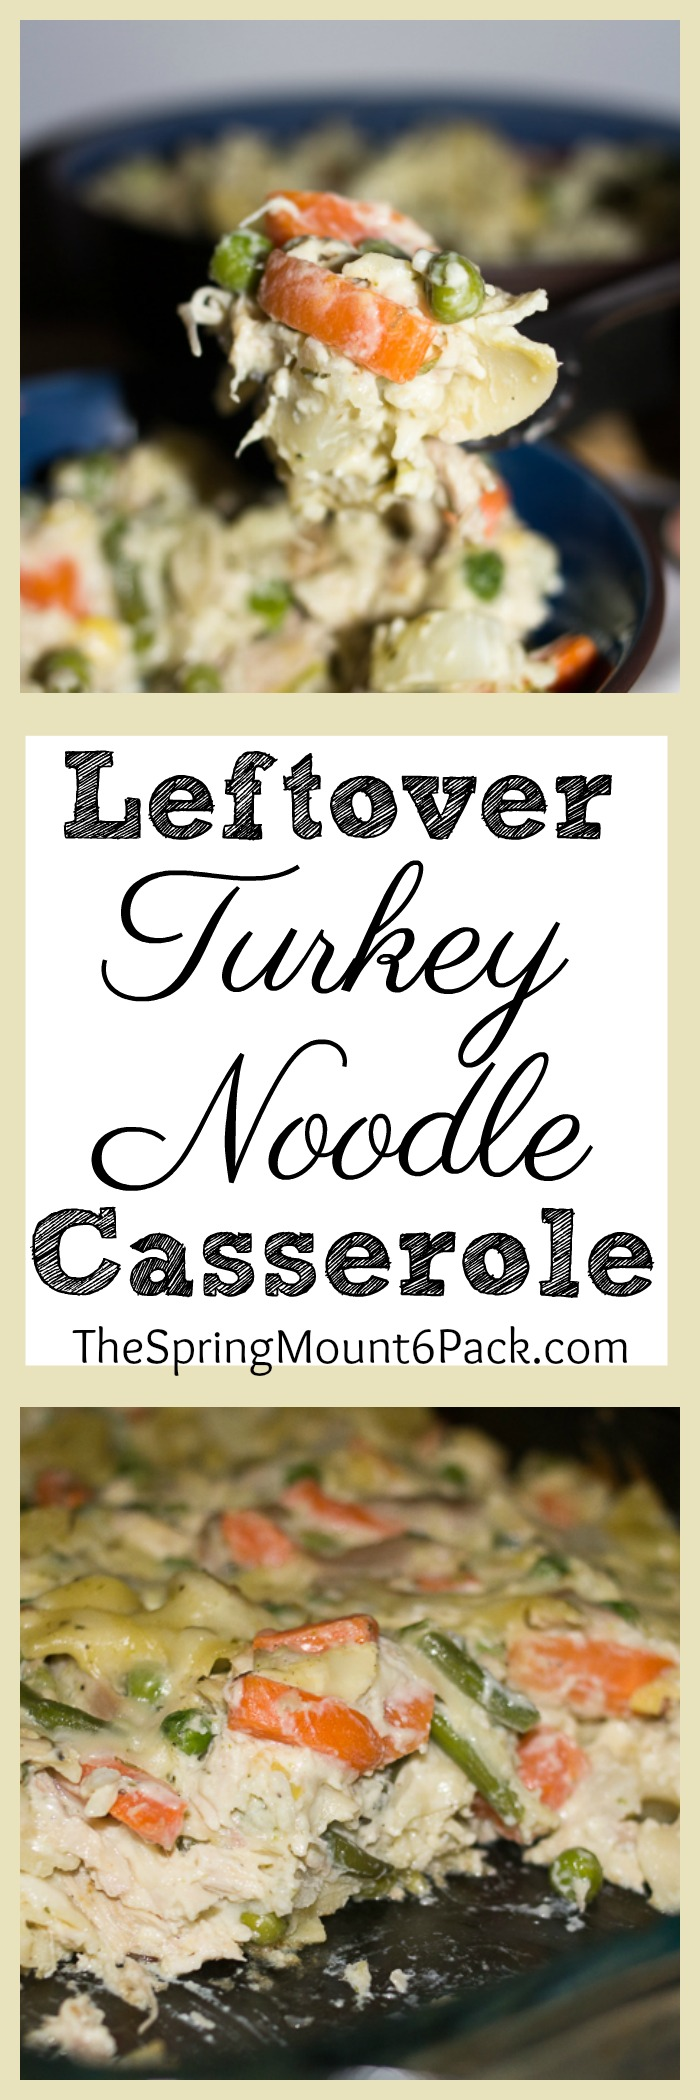 Turkey for Thanksgiving and Christmas is great. You get a lot of meat for the price. Try this leftover turkey noodle casserole to make leftovers delicious.